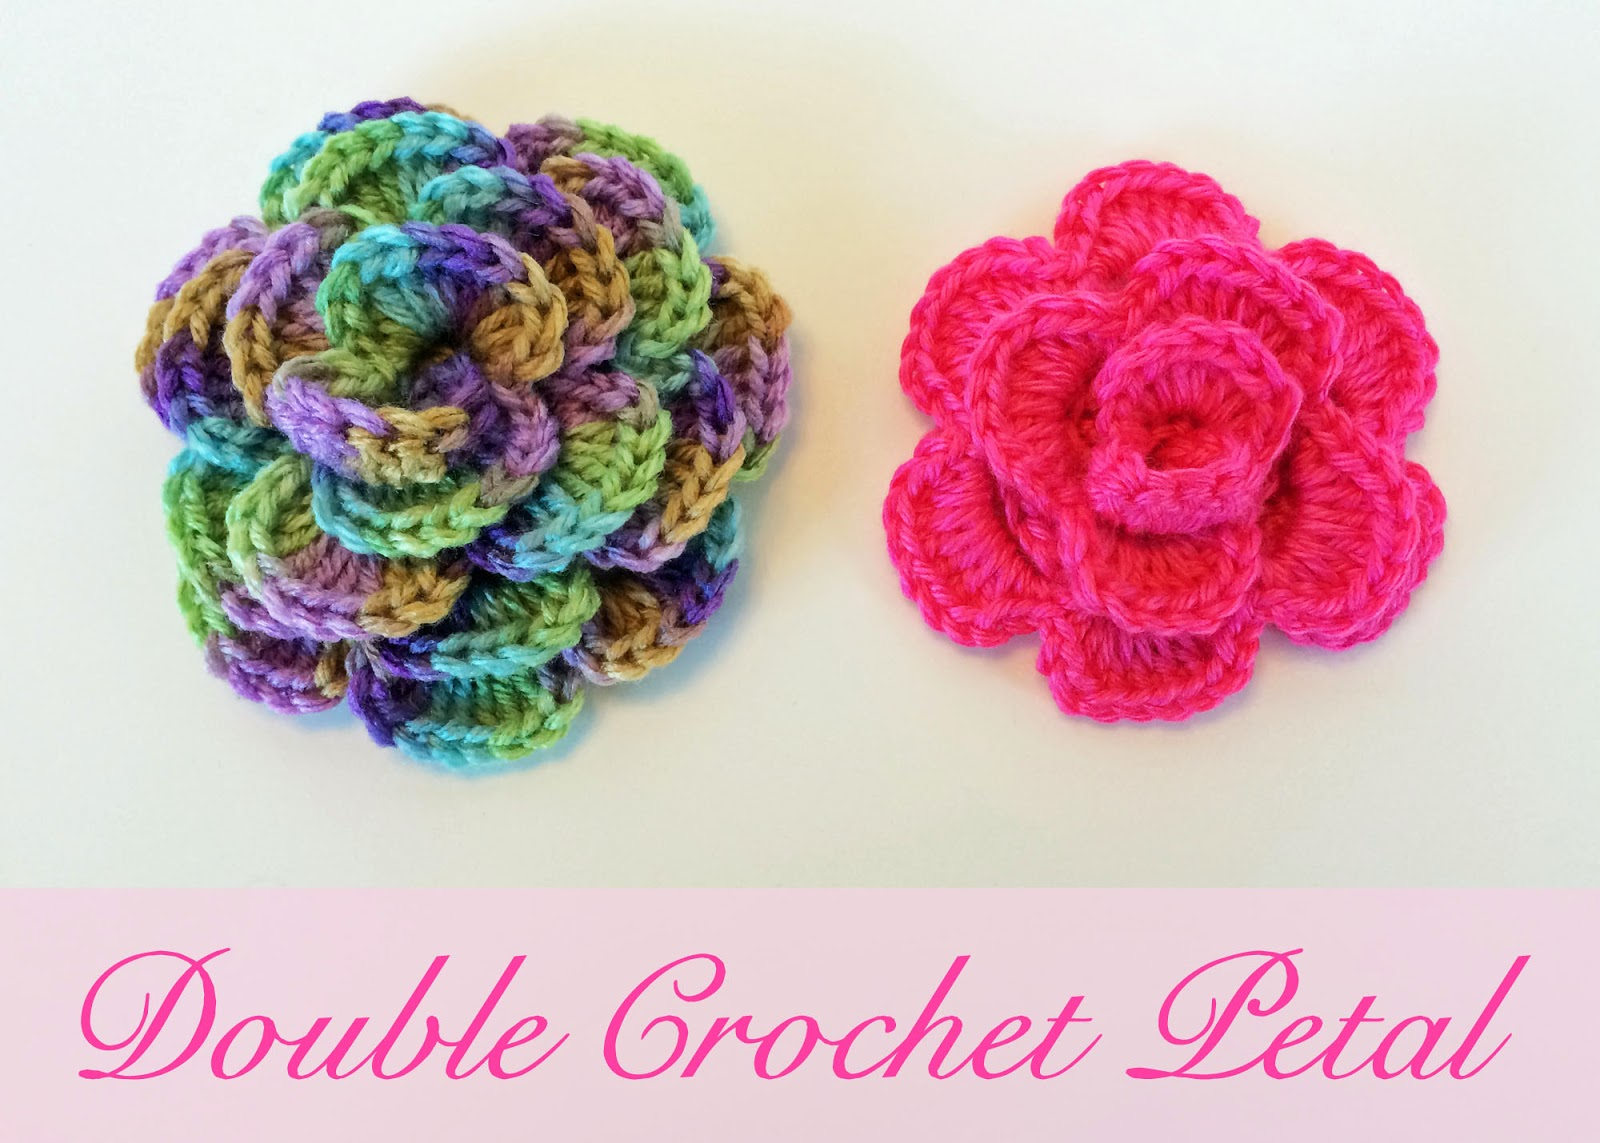 Crochet Rochelle January 2014 It With Flowers S Found A Few Patterns Double Flower